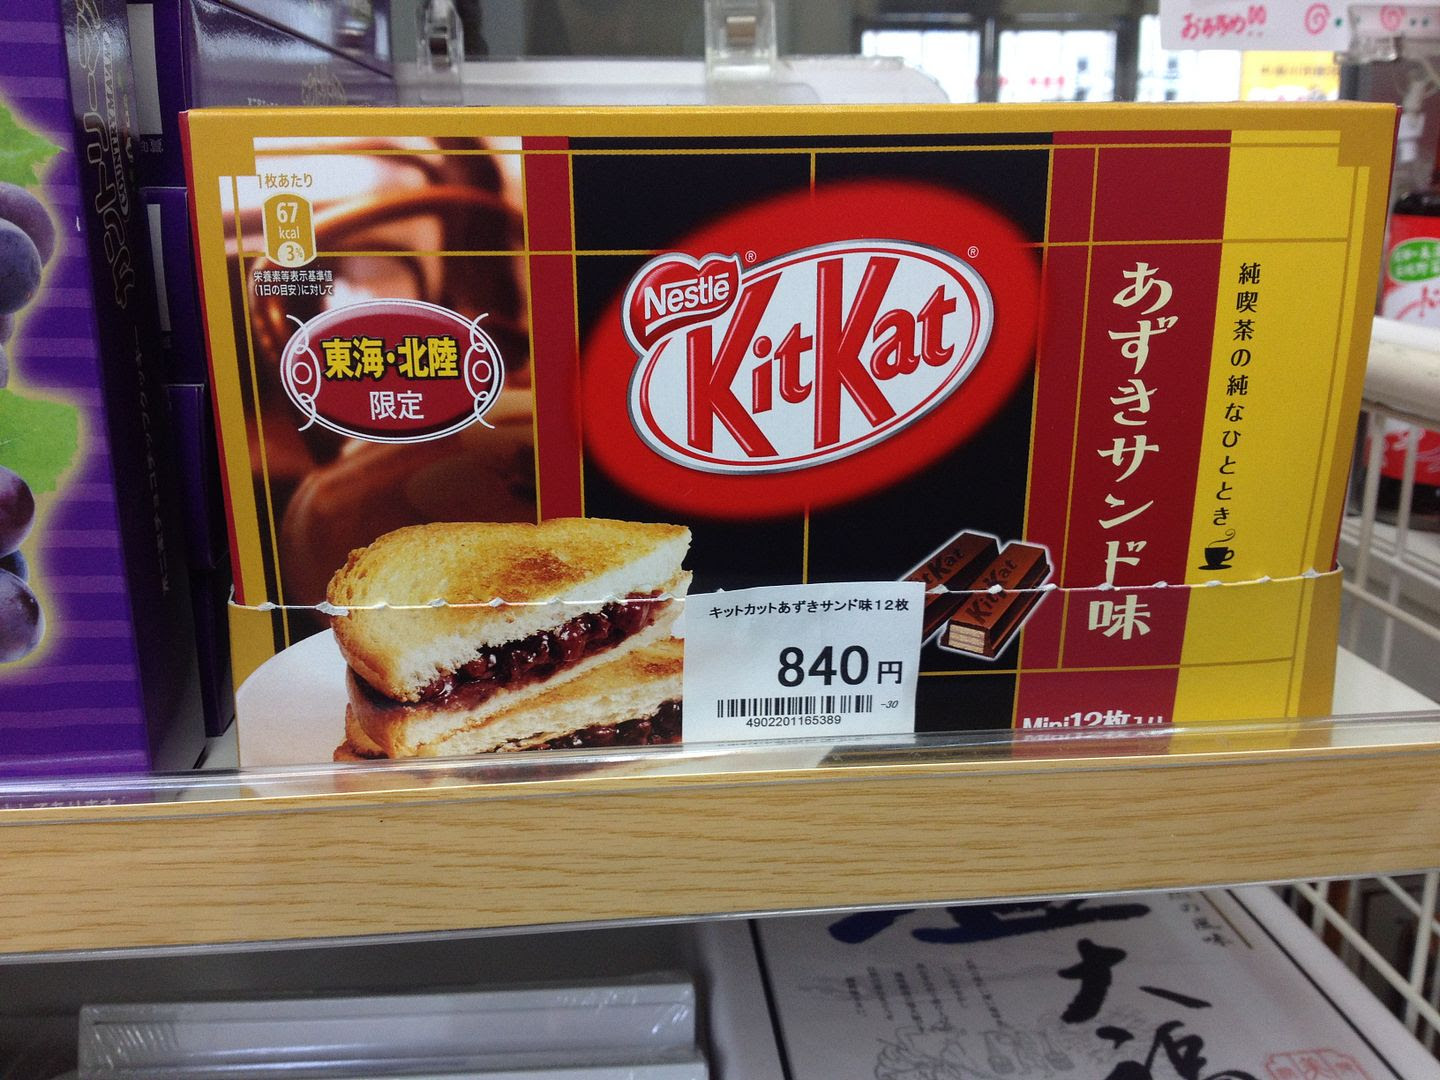 KitKat Sandwich photo 2013-12-21104743_zpsefbbf2e8.jpg